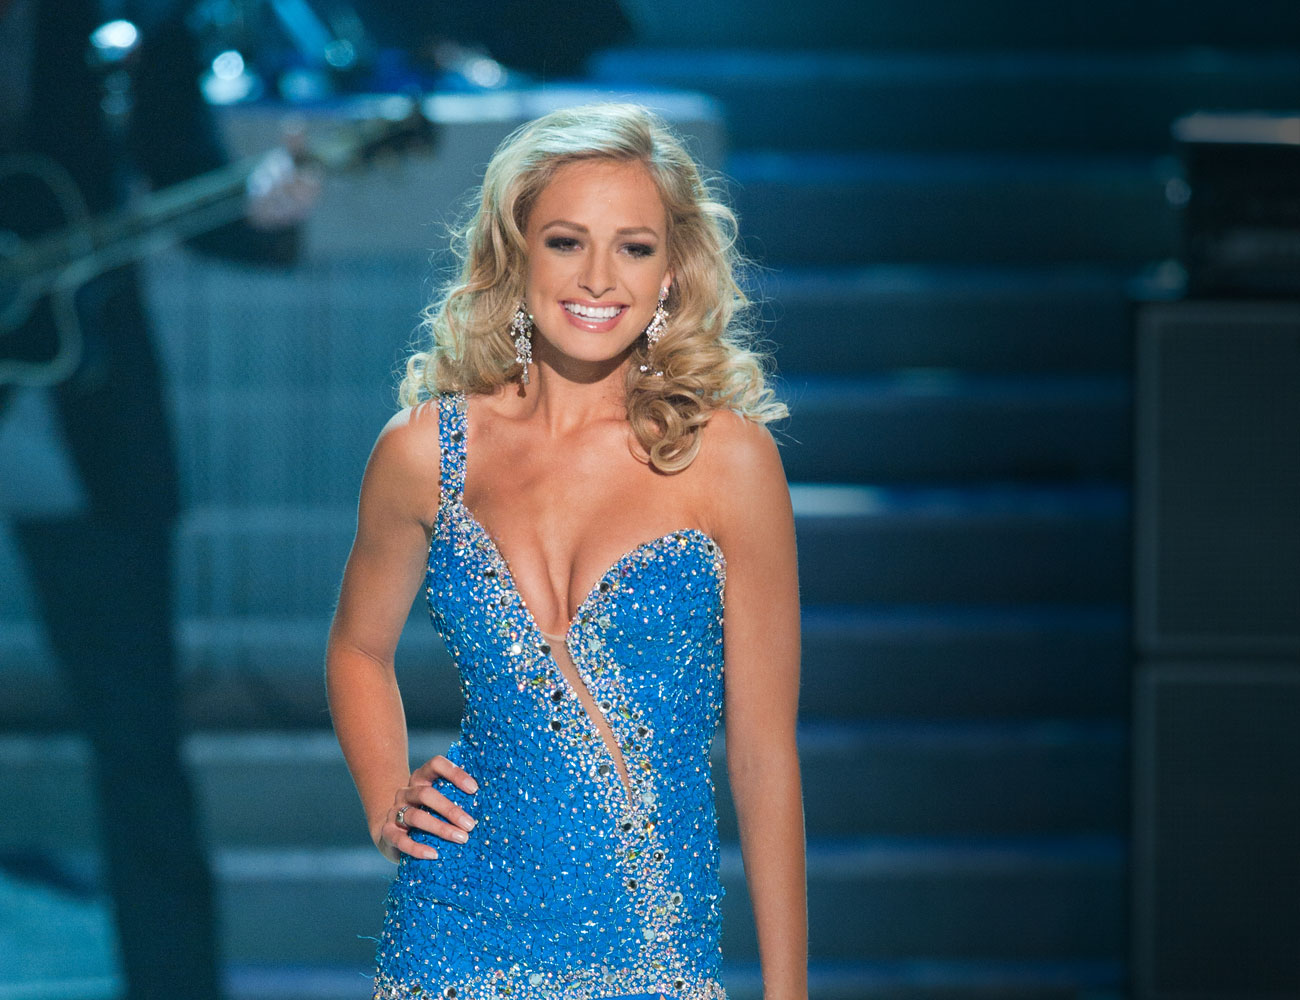 Miss Alabama 2010 Audrey Moore